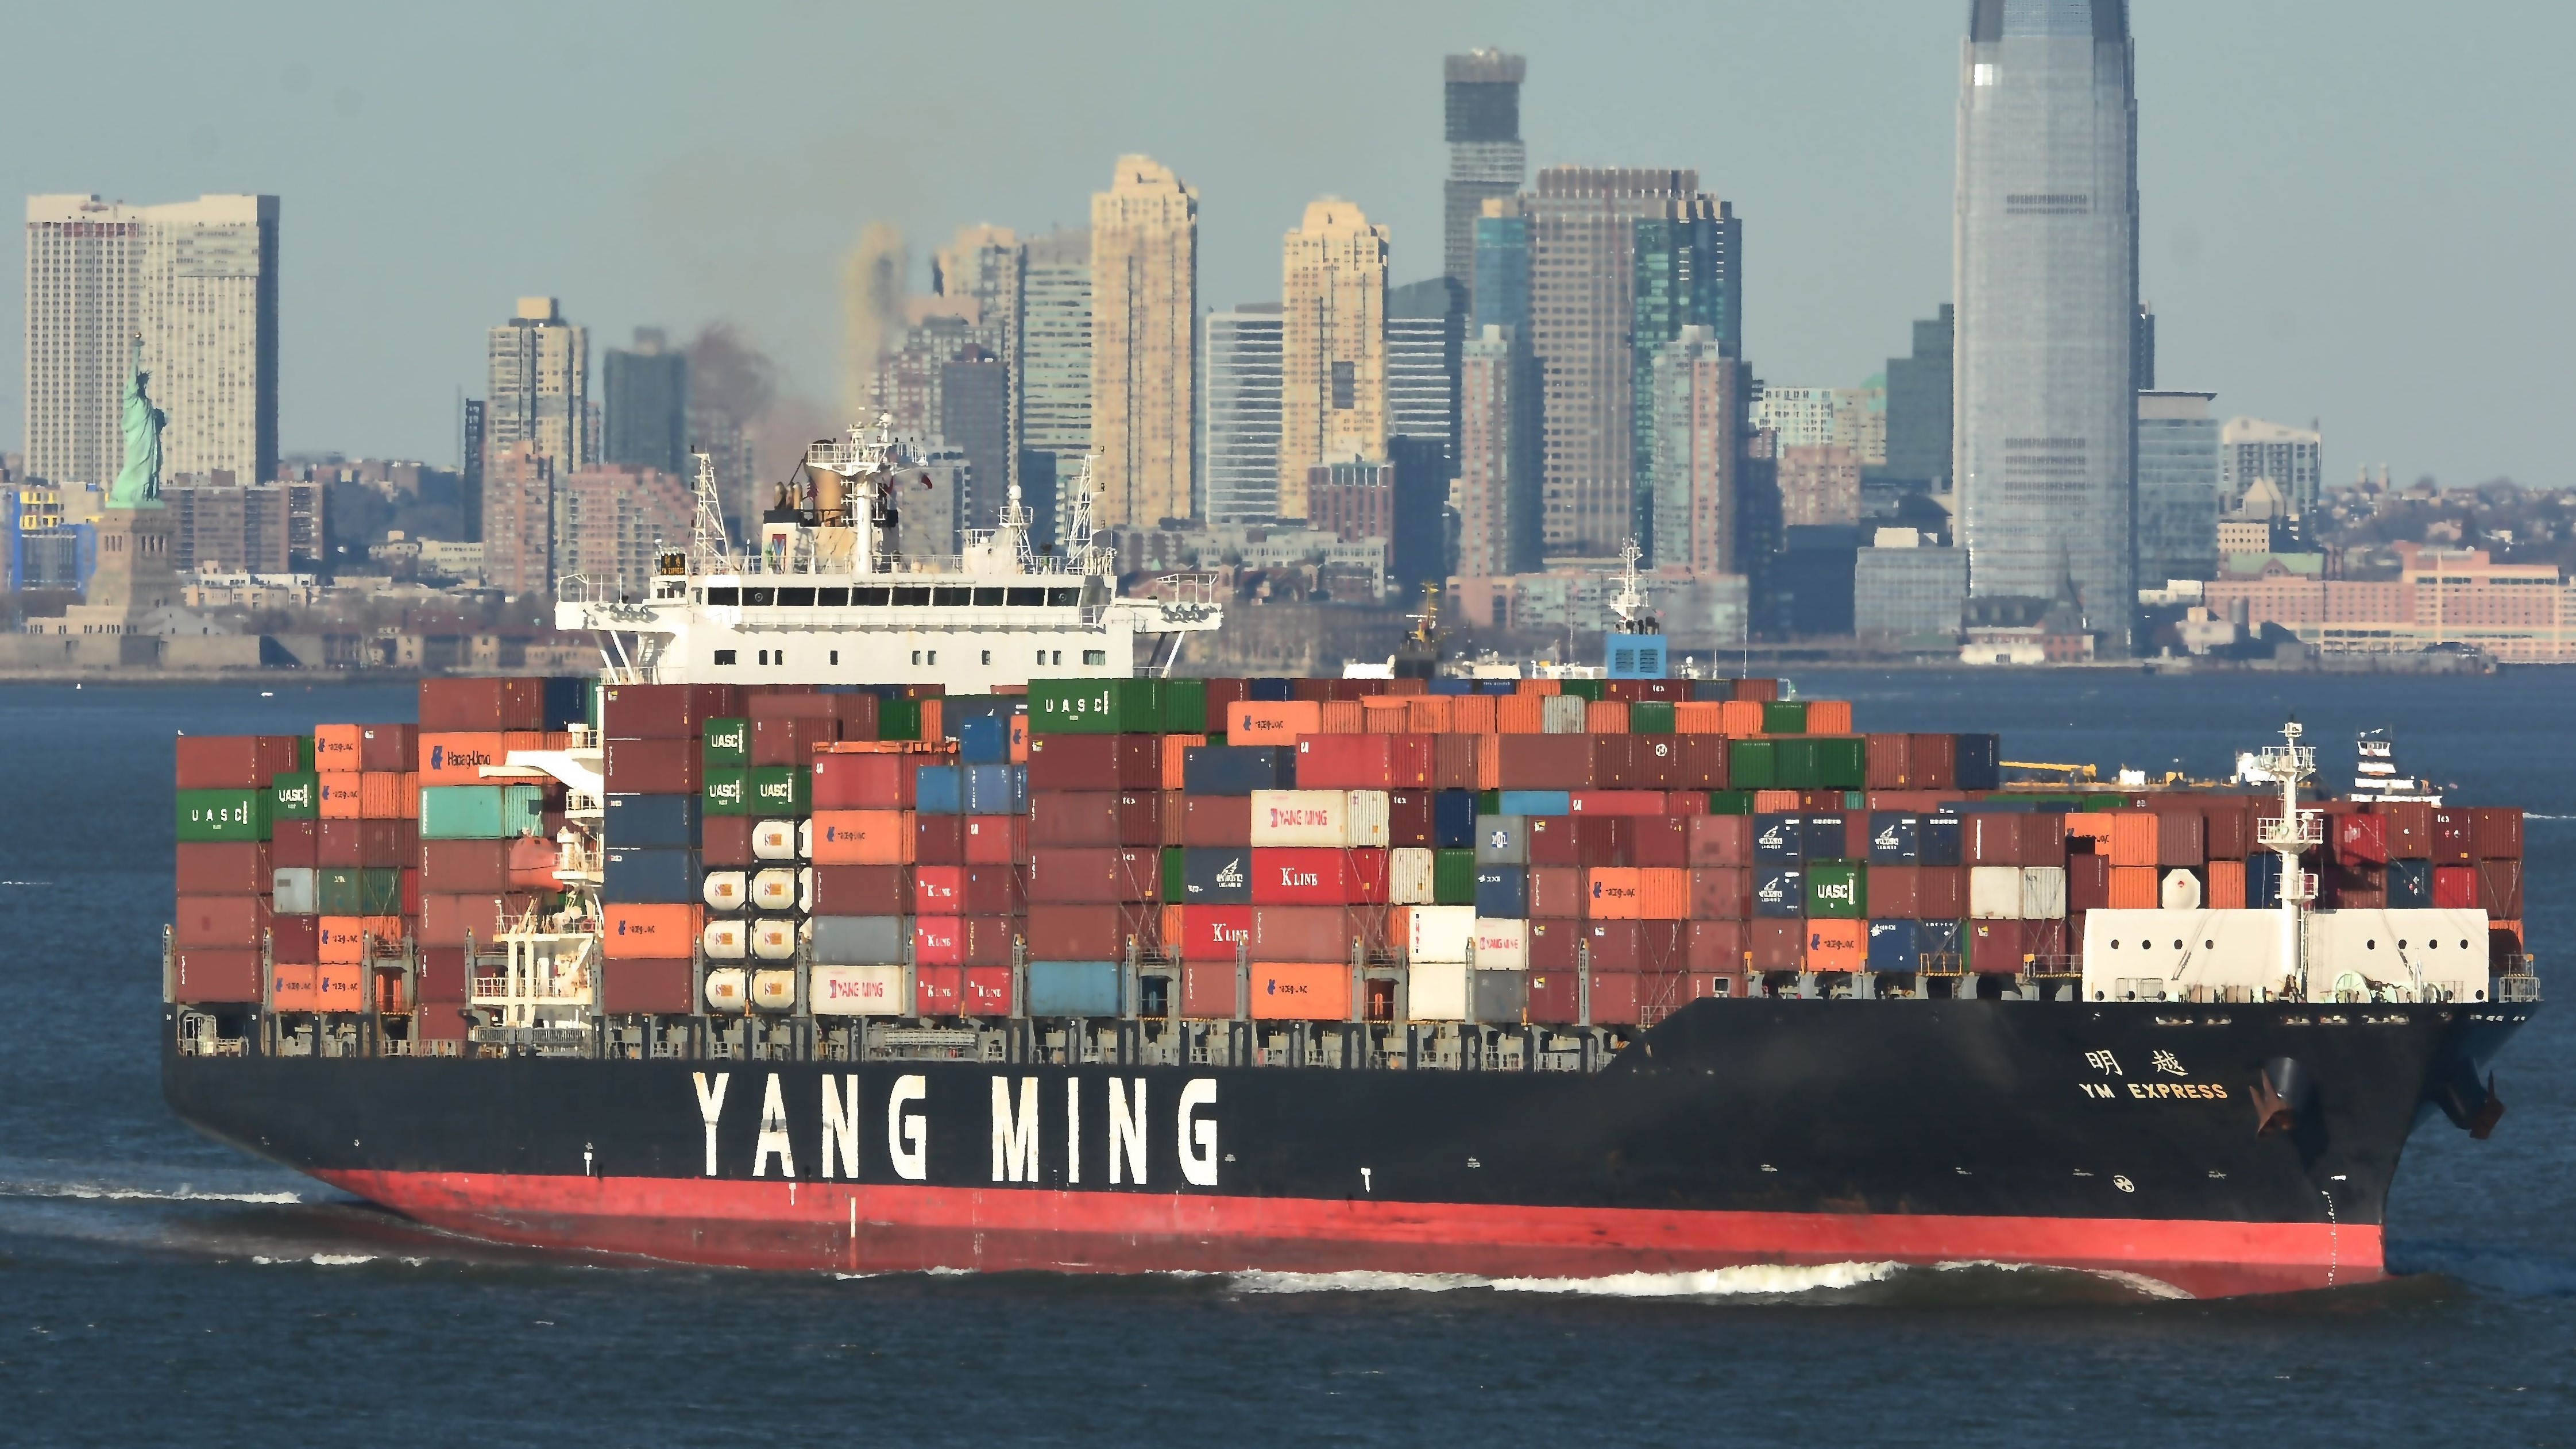 Yang Ming 2018 result suffering from high bunker costs 1